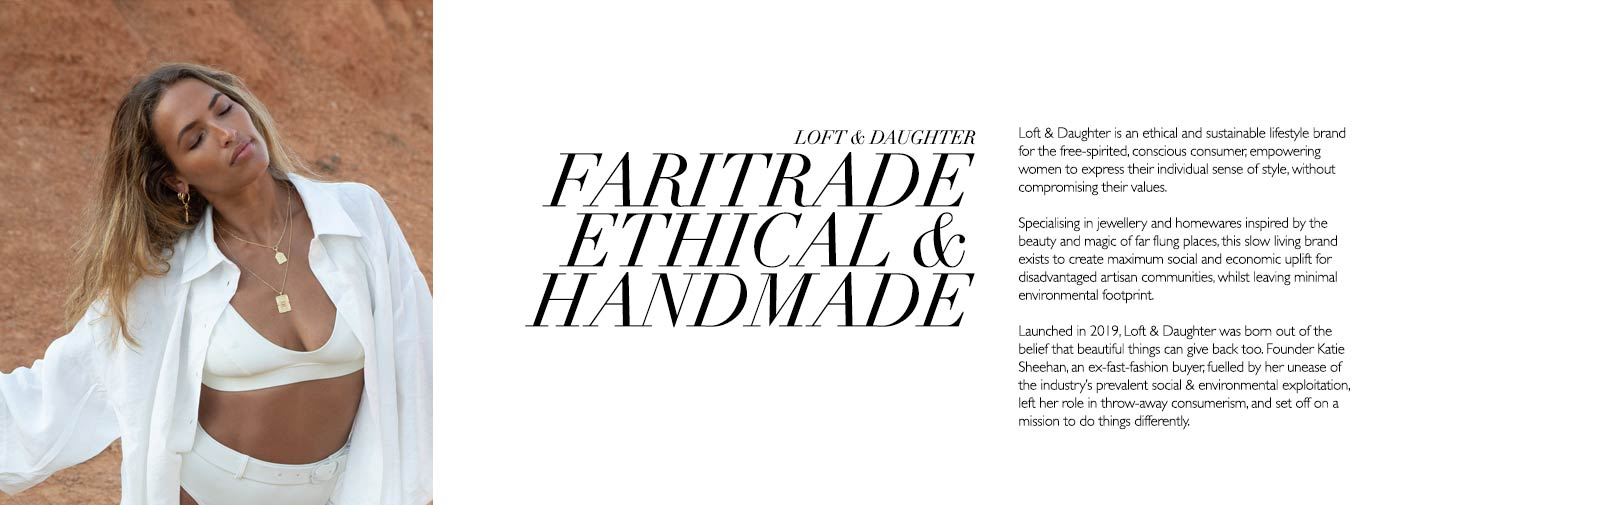 LOFT & DAUGHTER - FARITRADE ETHICAL & HANDMADE - Loft & Daughter is an ethical and sustainable lifestyle brand for the free-spirited, conscious consumer, empowering women to express their individual sense of style, without compromising their values.